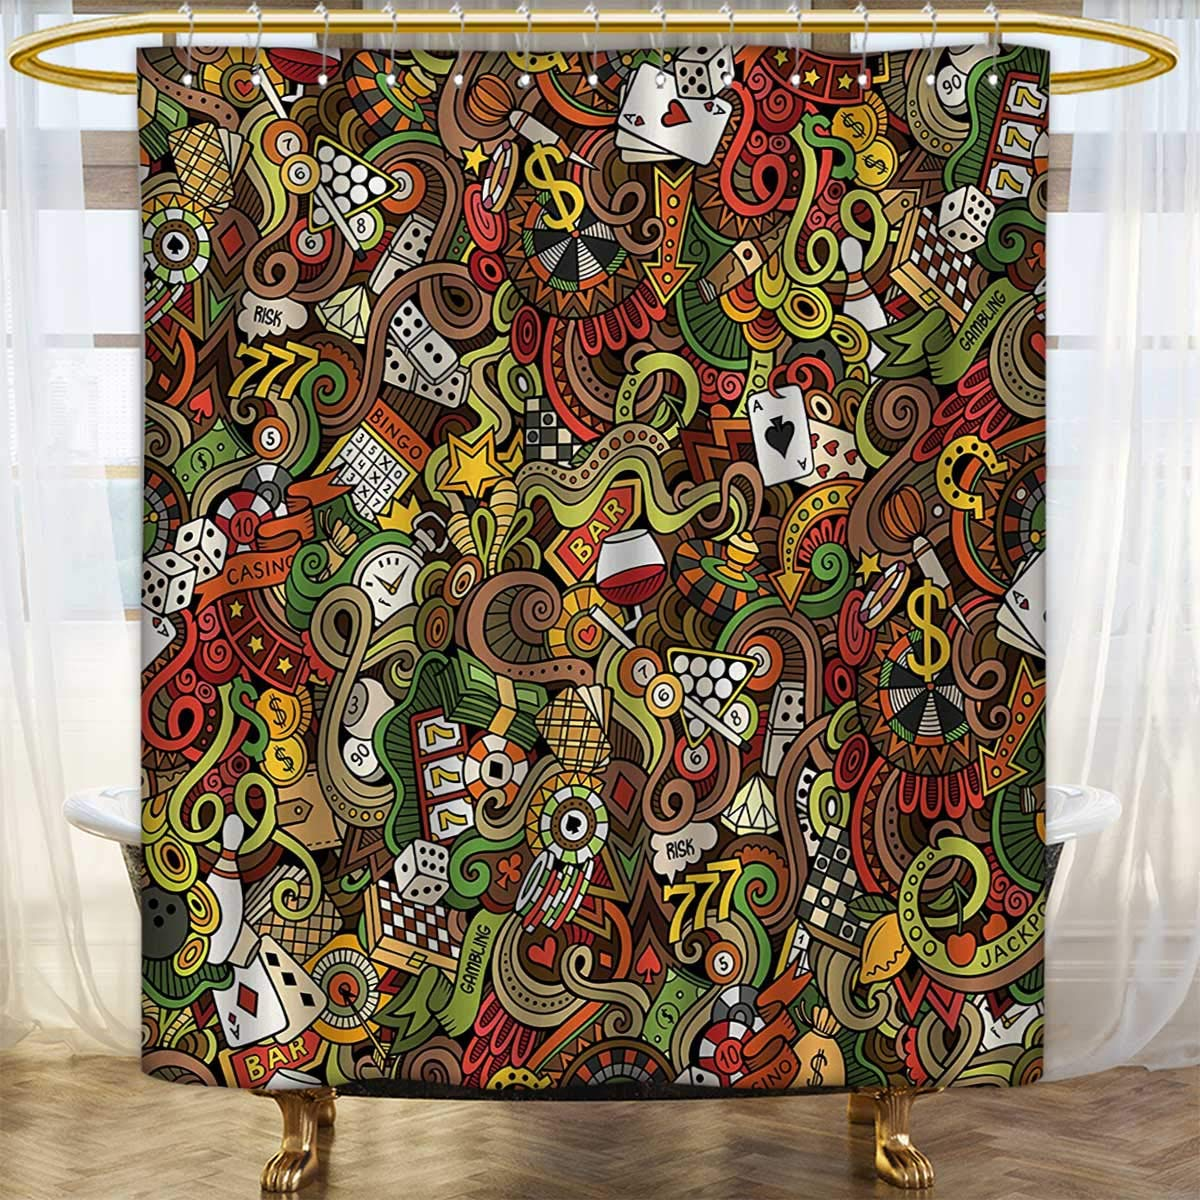 lacencn Casino,Shower Curtains with Shower Hooks,Doodles Style Artwork of Bingo and Cards Excitement Checkers King Tambourine Vegas,Bathroom Set with Hooks,Multicolor,Size:W48 x L72 inch